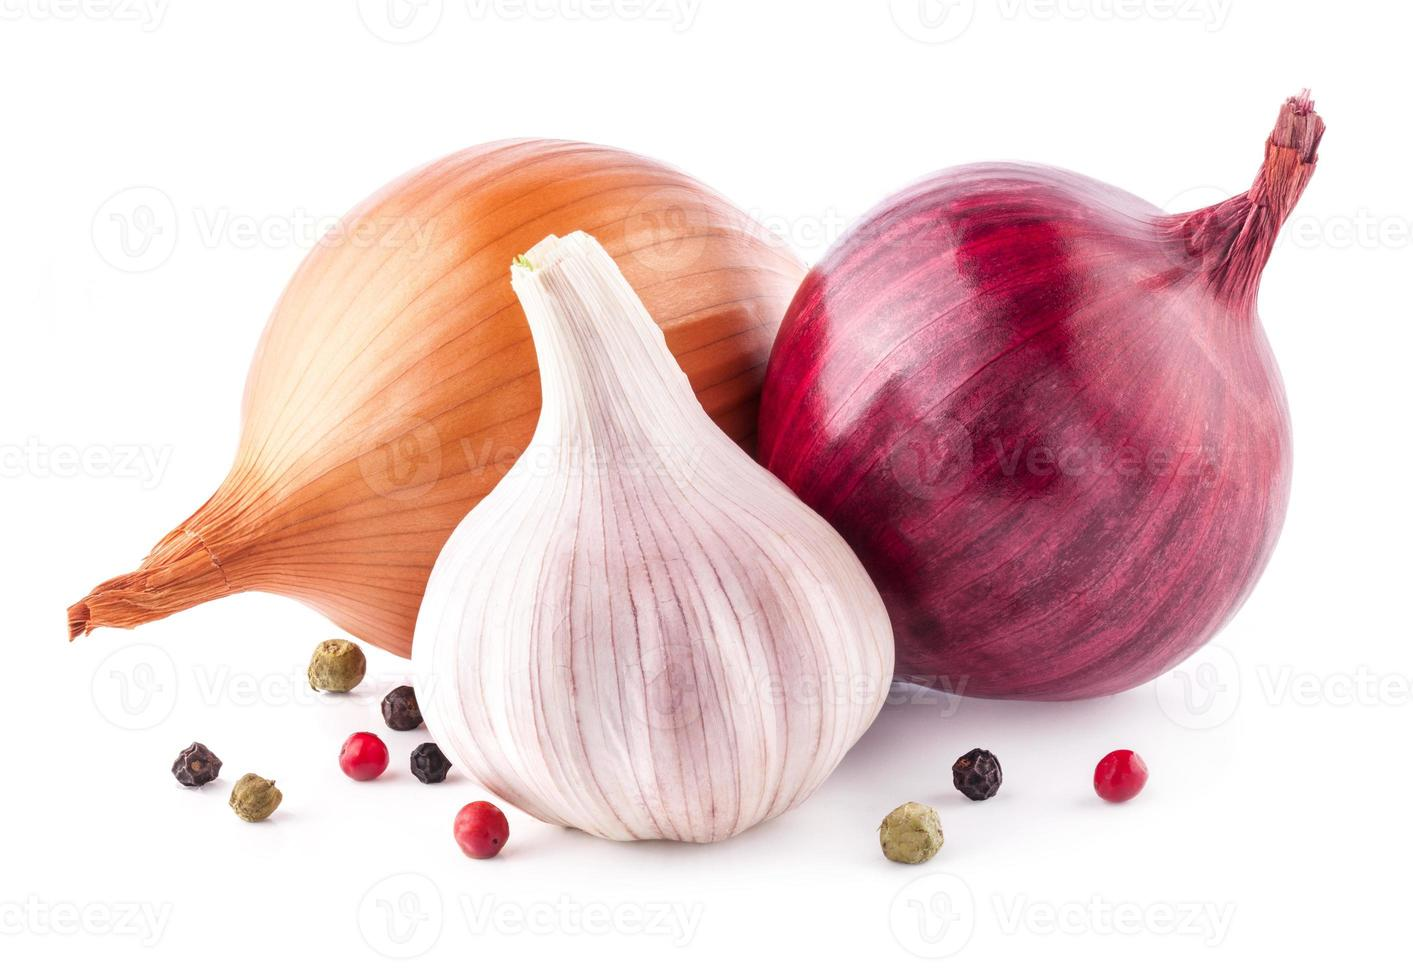 Garlic and onion with parsley photo